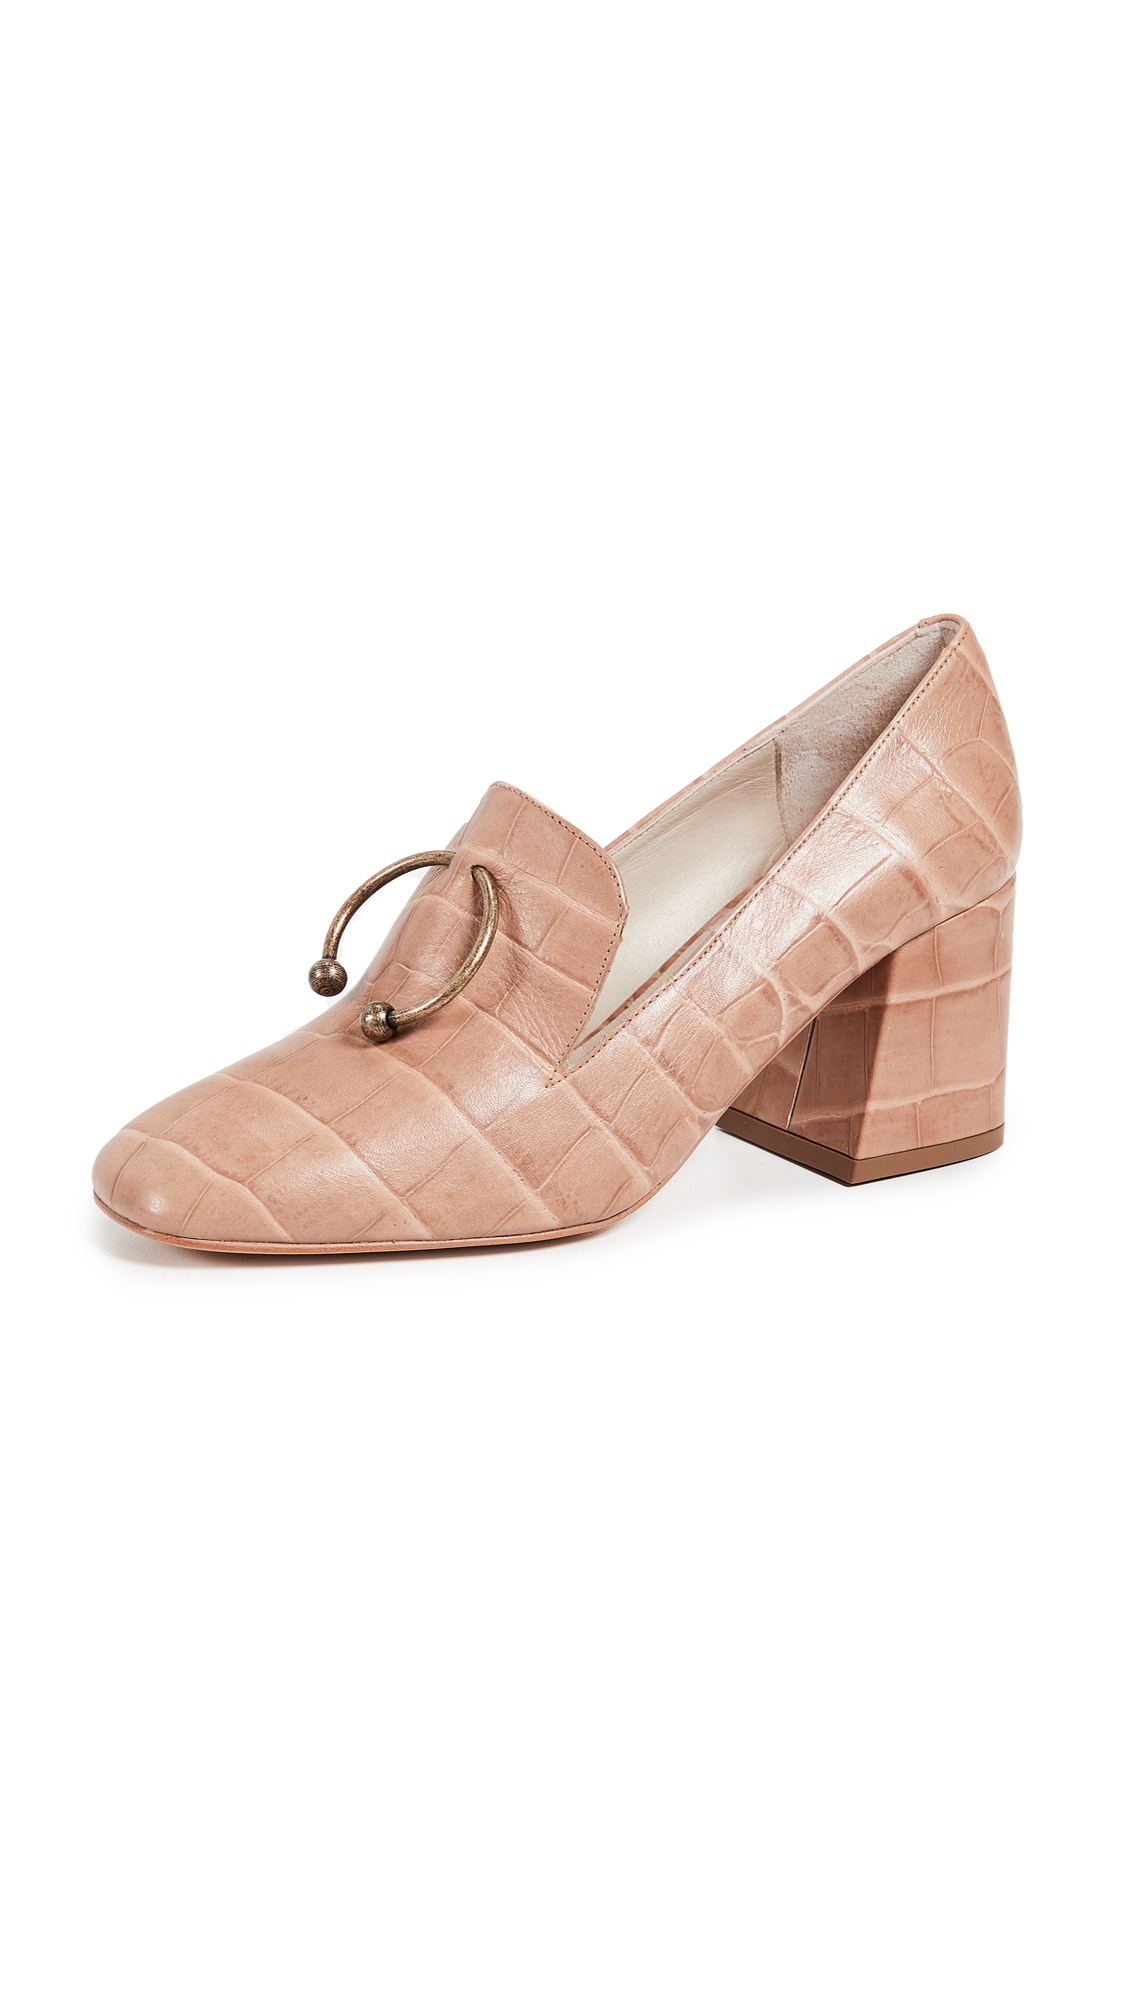 Freda Salvador Lift Loafer Pumps - Cocoa